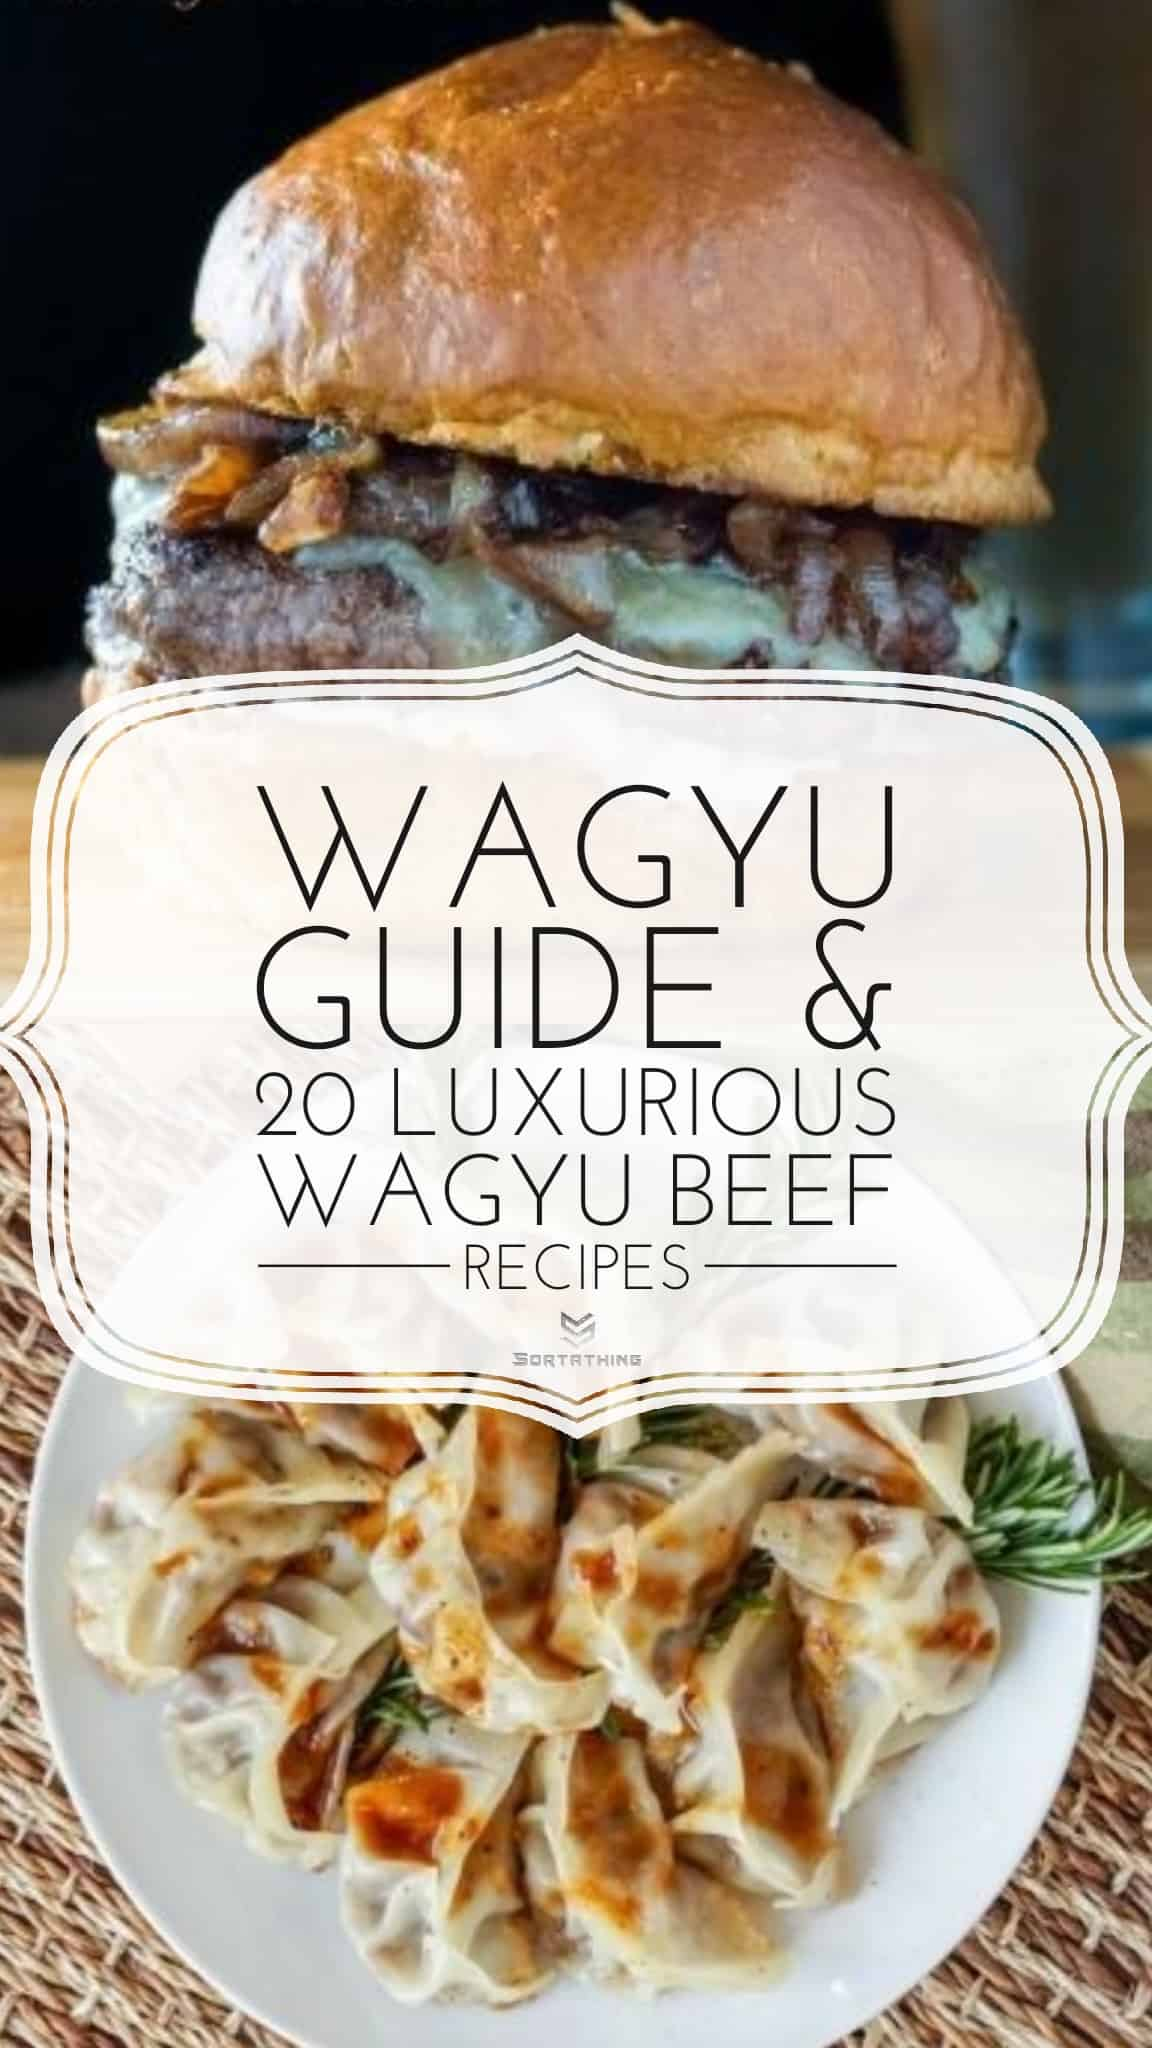 Wagyu Beefburger and Wagyu Beef Gyoza Dumplings